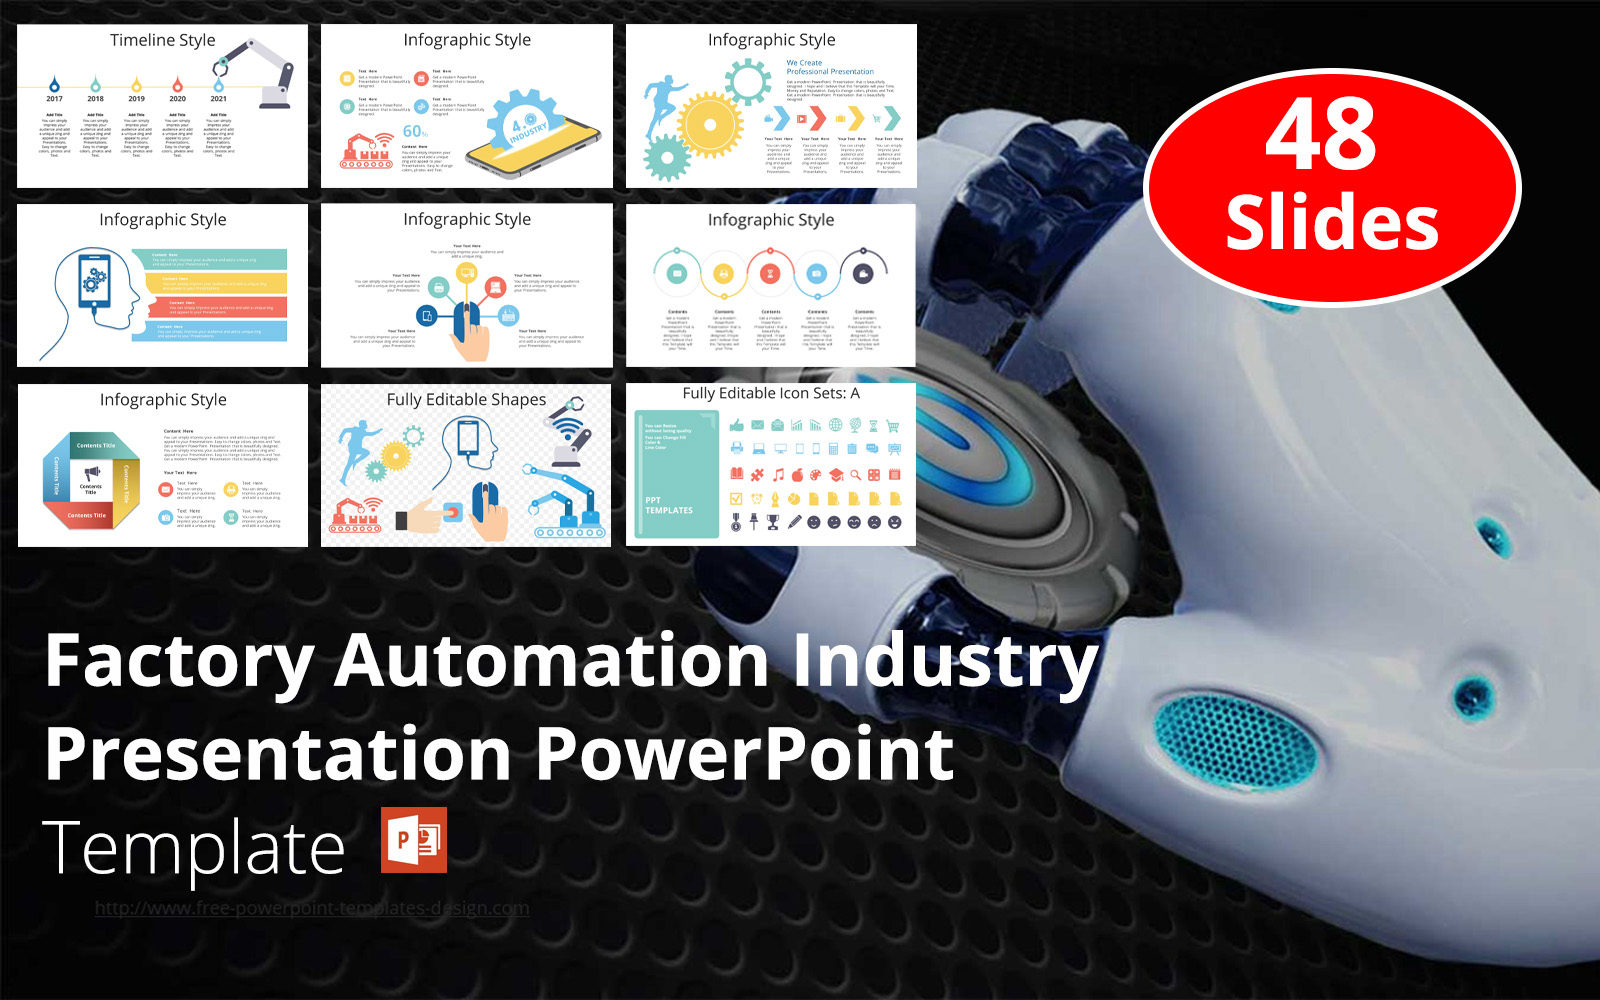 Factory Automation Industry Presentation PowerPoint Template